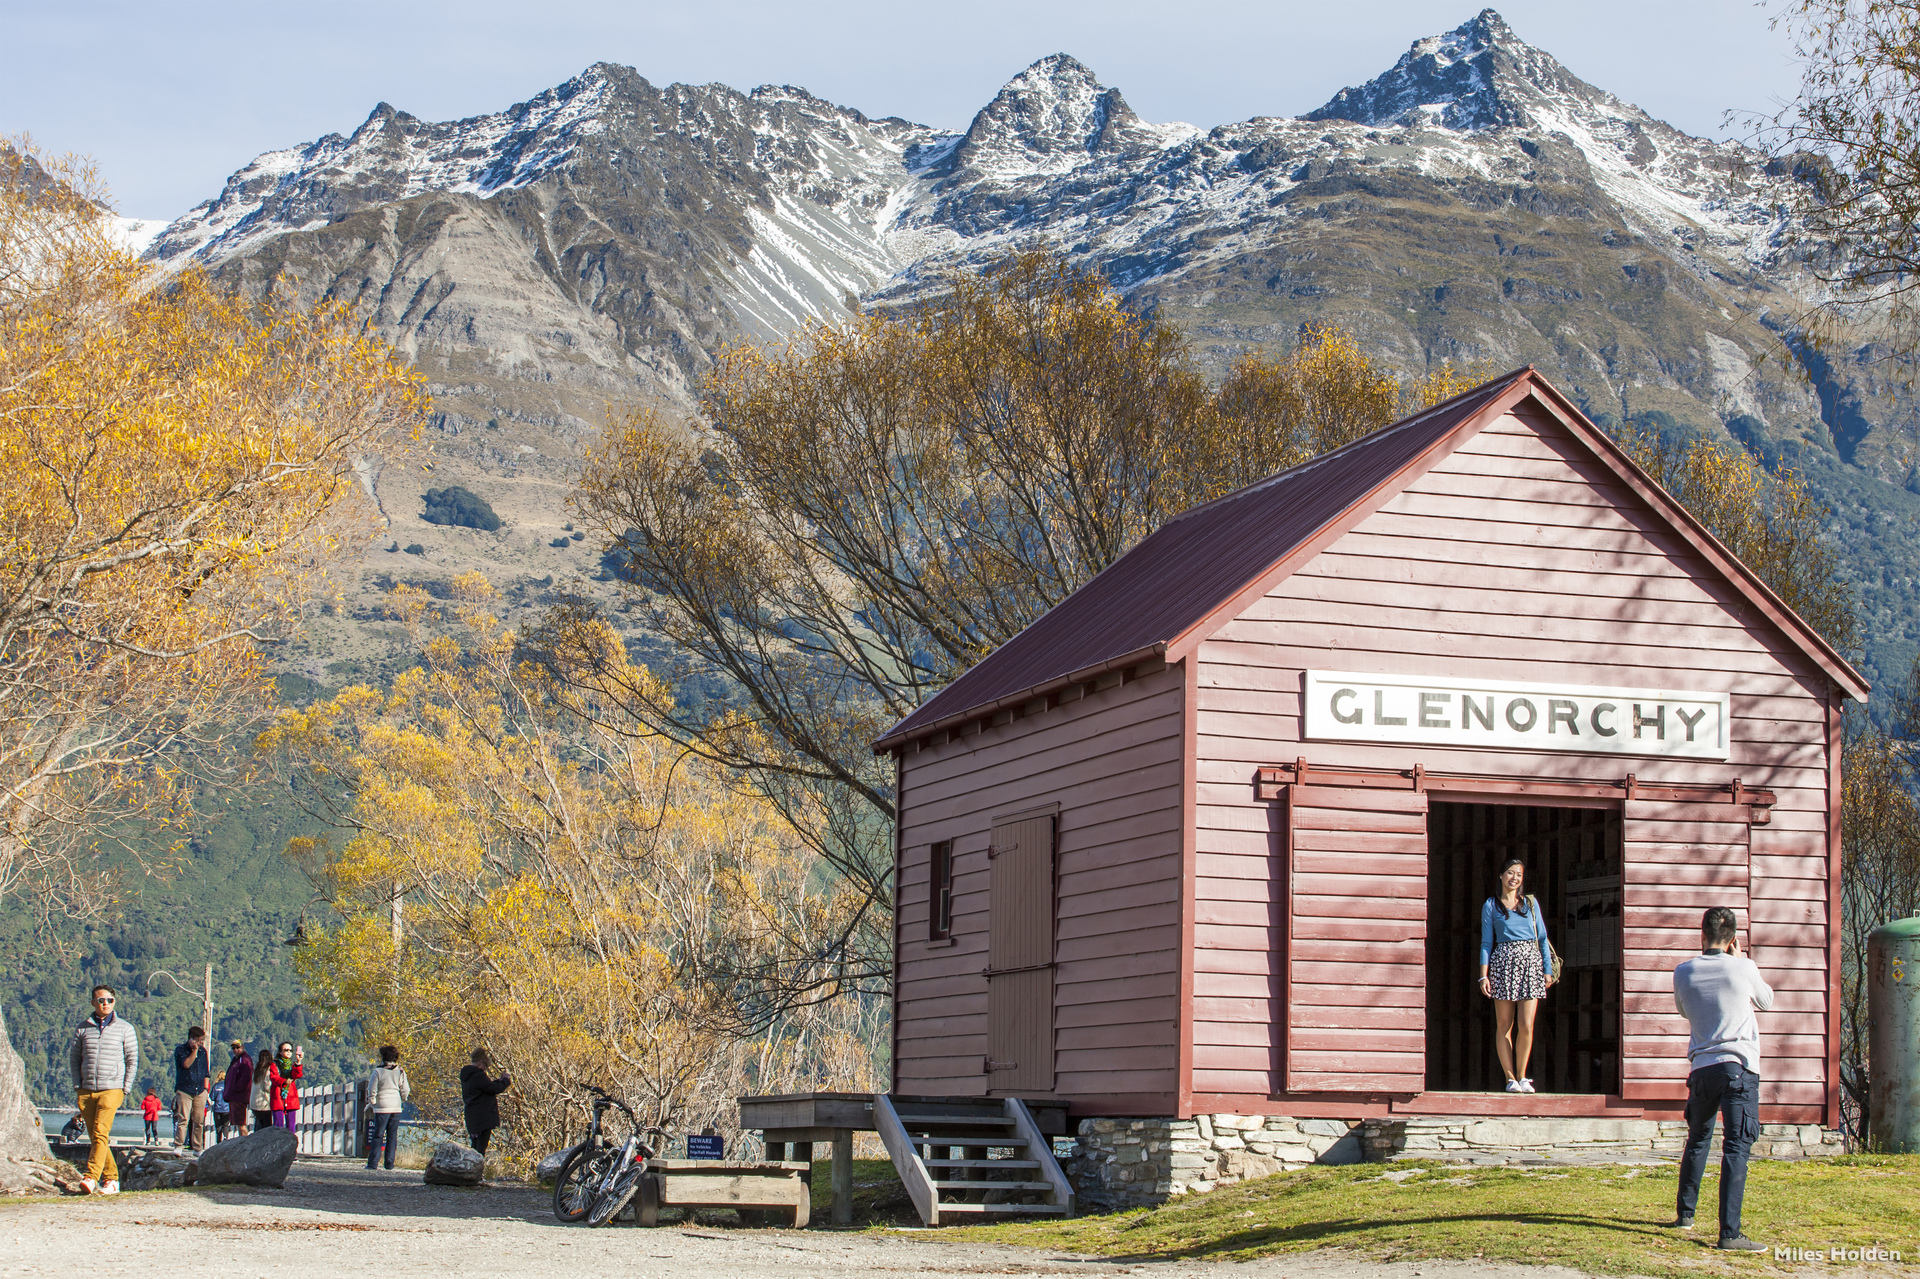 L600-Glenorchy-Queenstown-Miles-Holden.jpg